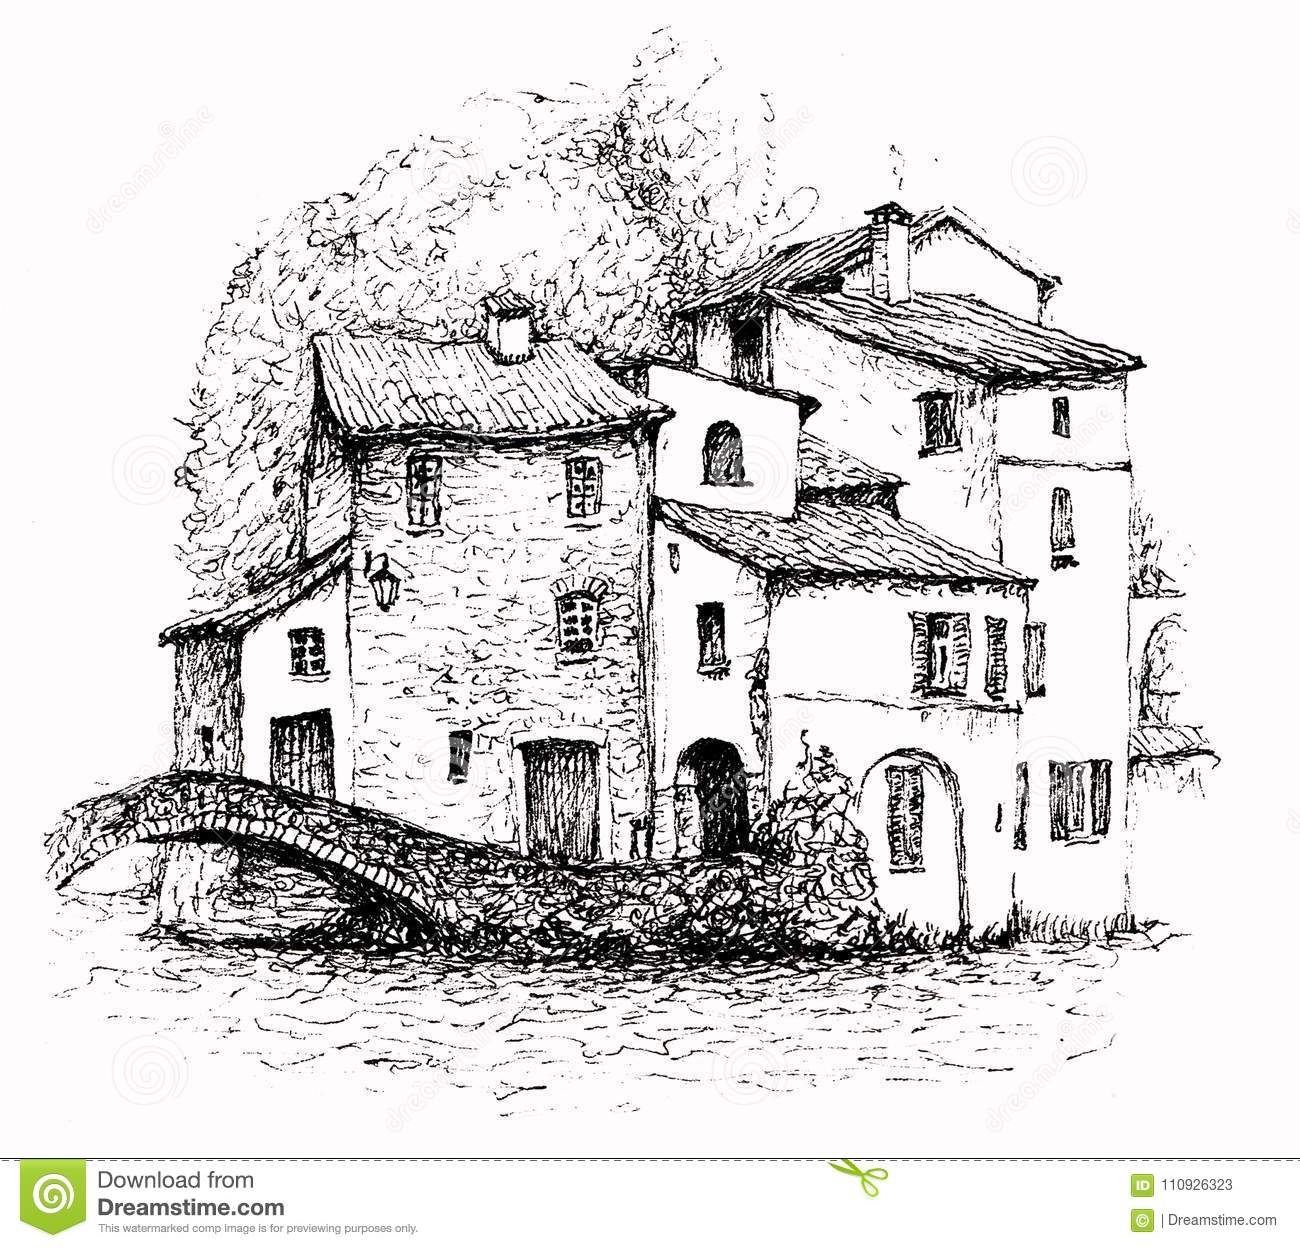 an ink sketch of italian landscape isolated on white background